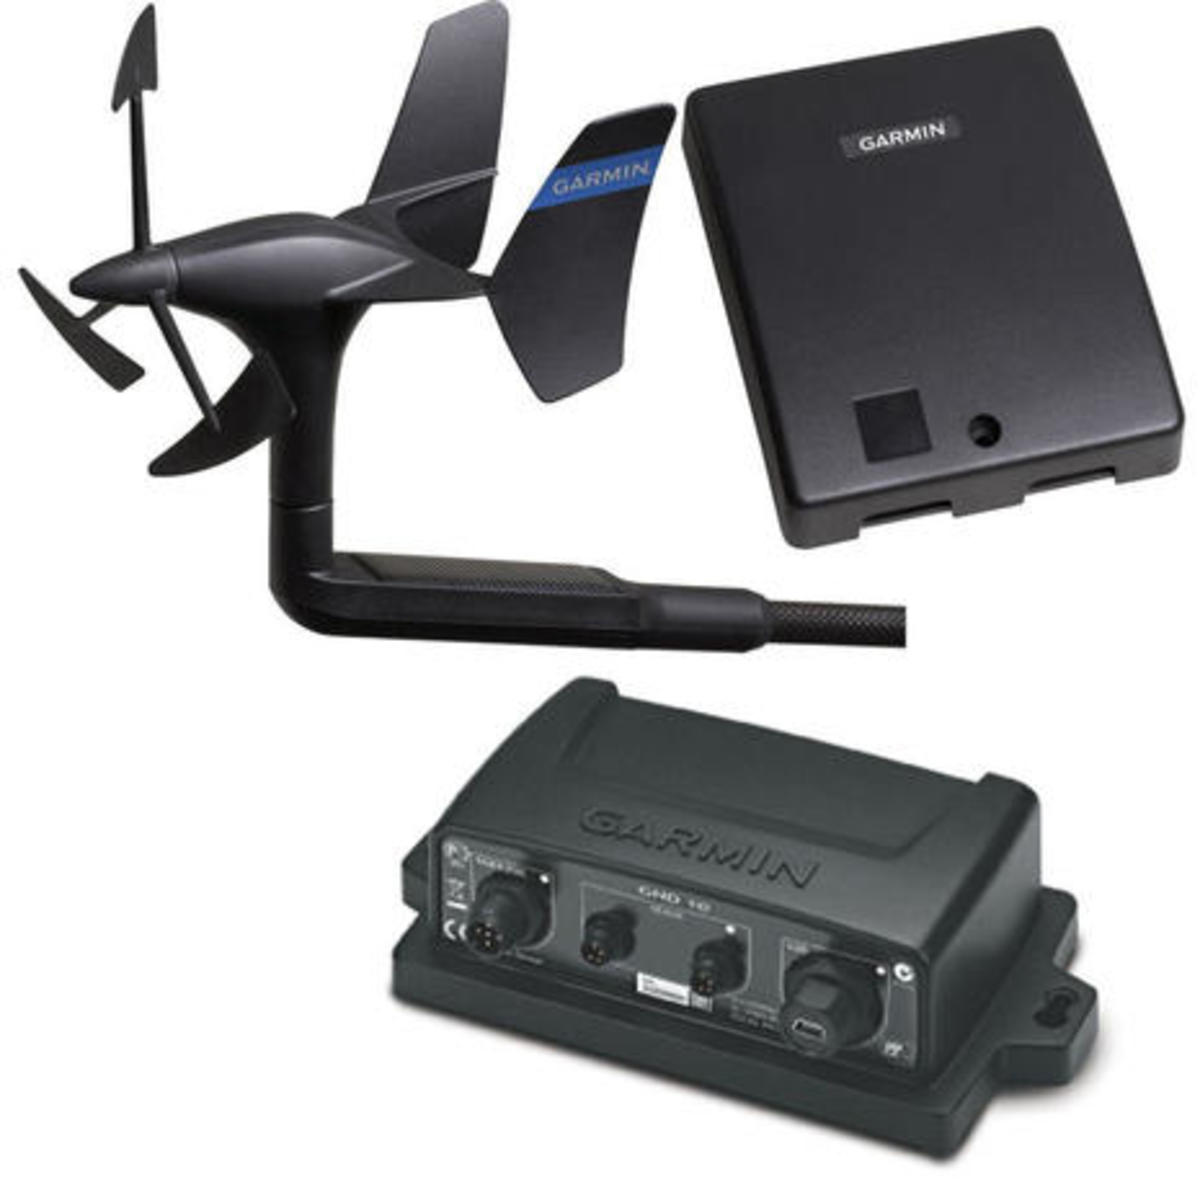 Garmin_gWind_Wireless_1_hardware_aPanbo.jpg